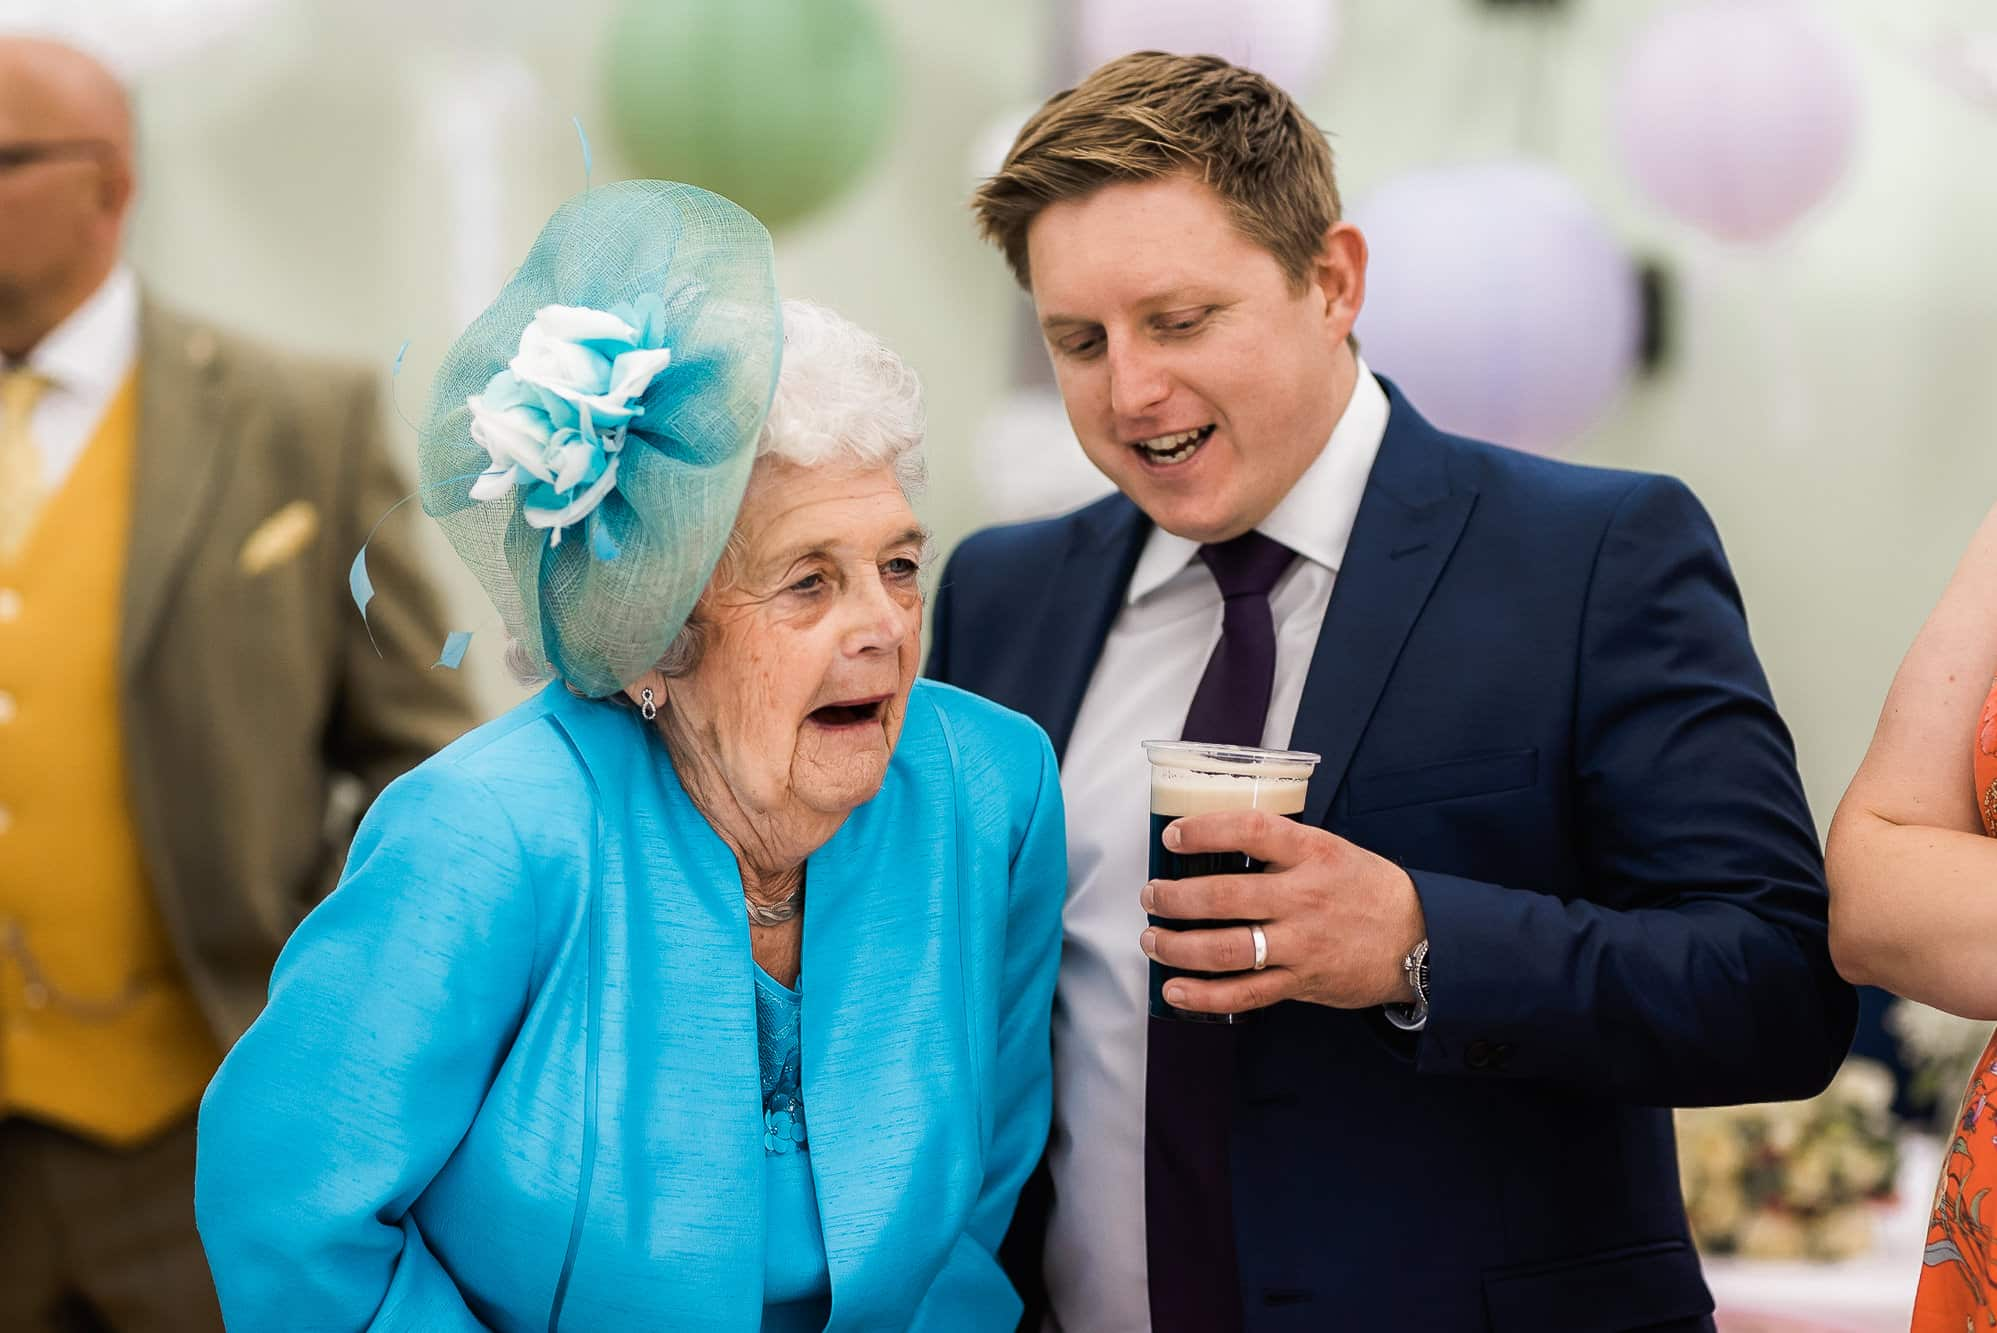 Granny laughing during speeches